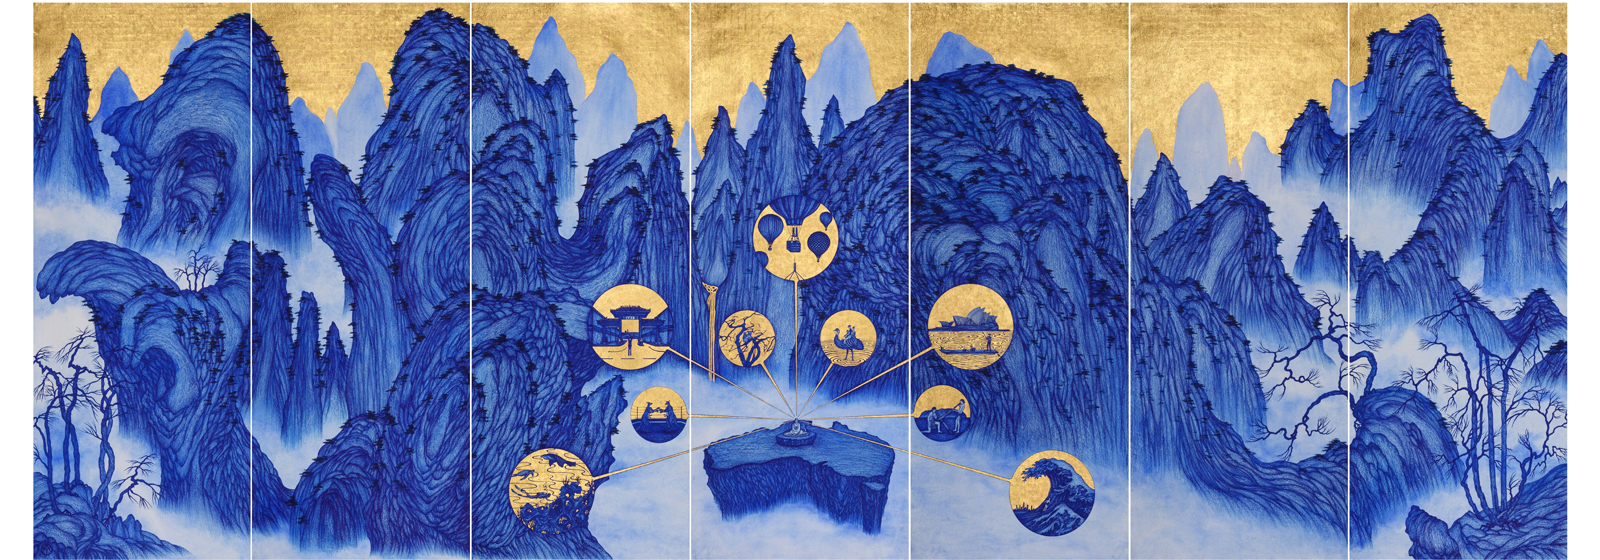 YAO Jui-chung, Yao's Journey to Australia, 2015, biro, oil pen with gold leaf on Indian handmade paper, 200x546x6cm. Courtesy of the artist and Tina Keng Gallery.